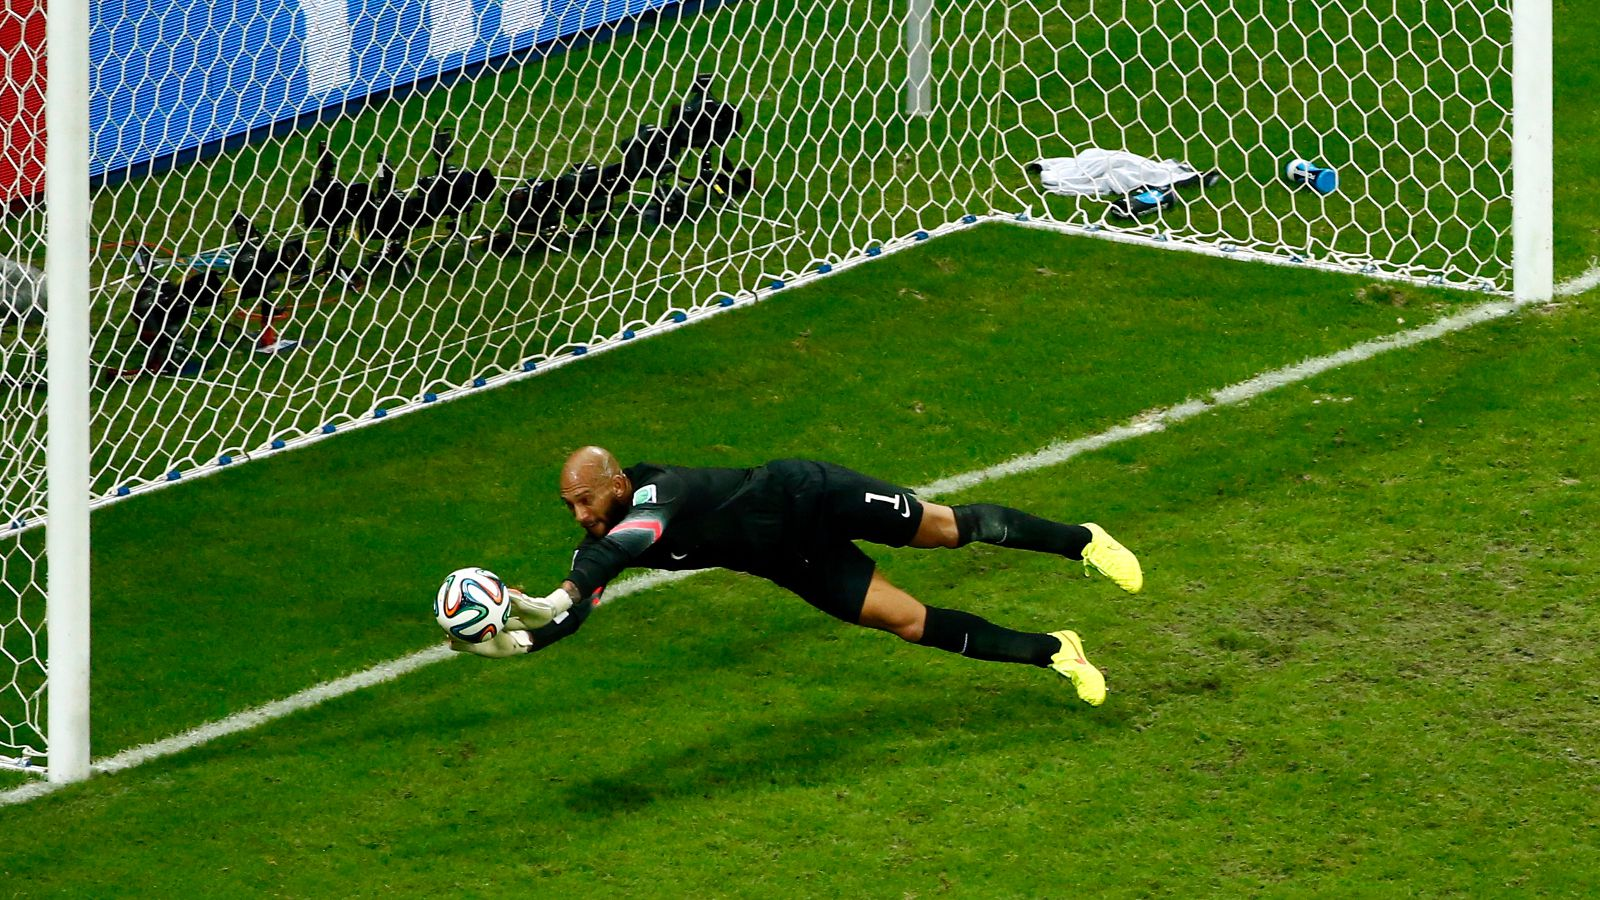 Goalkeeper Tim Howard of the U.S. saves a shot during their 2014 World Cup round of 16 game against Belgium at the Fonte Nova arena in Salvador July 1, 2014